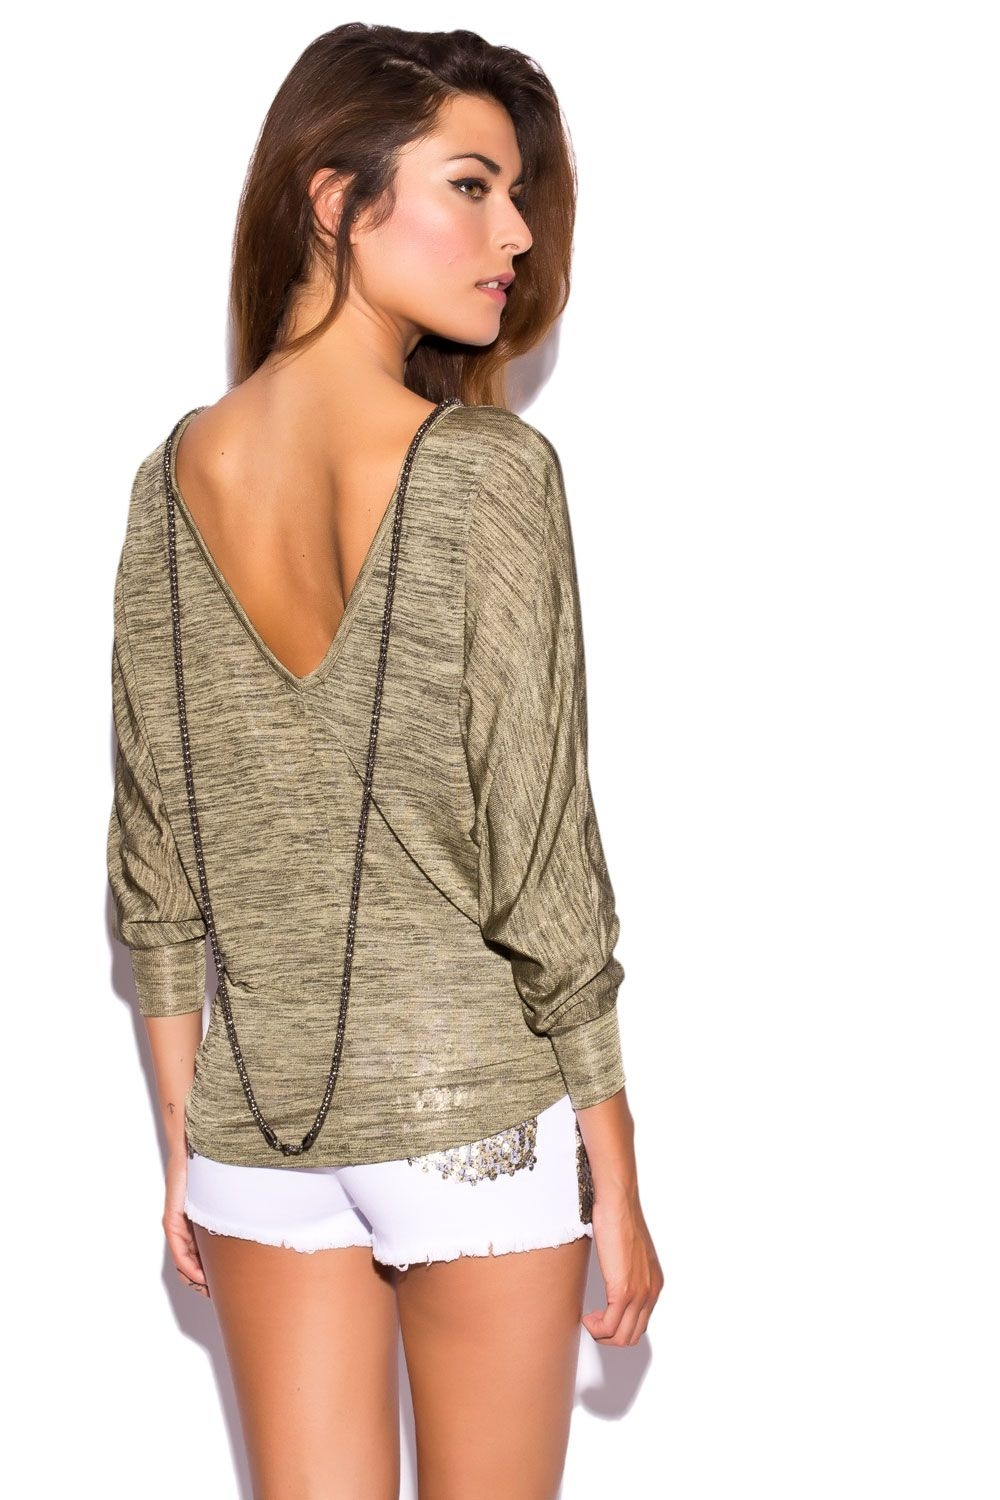 Kaki top with drop Neck and Chain Detail - Q2 Shop - Tienda de moda online